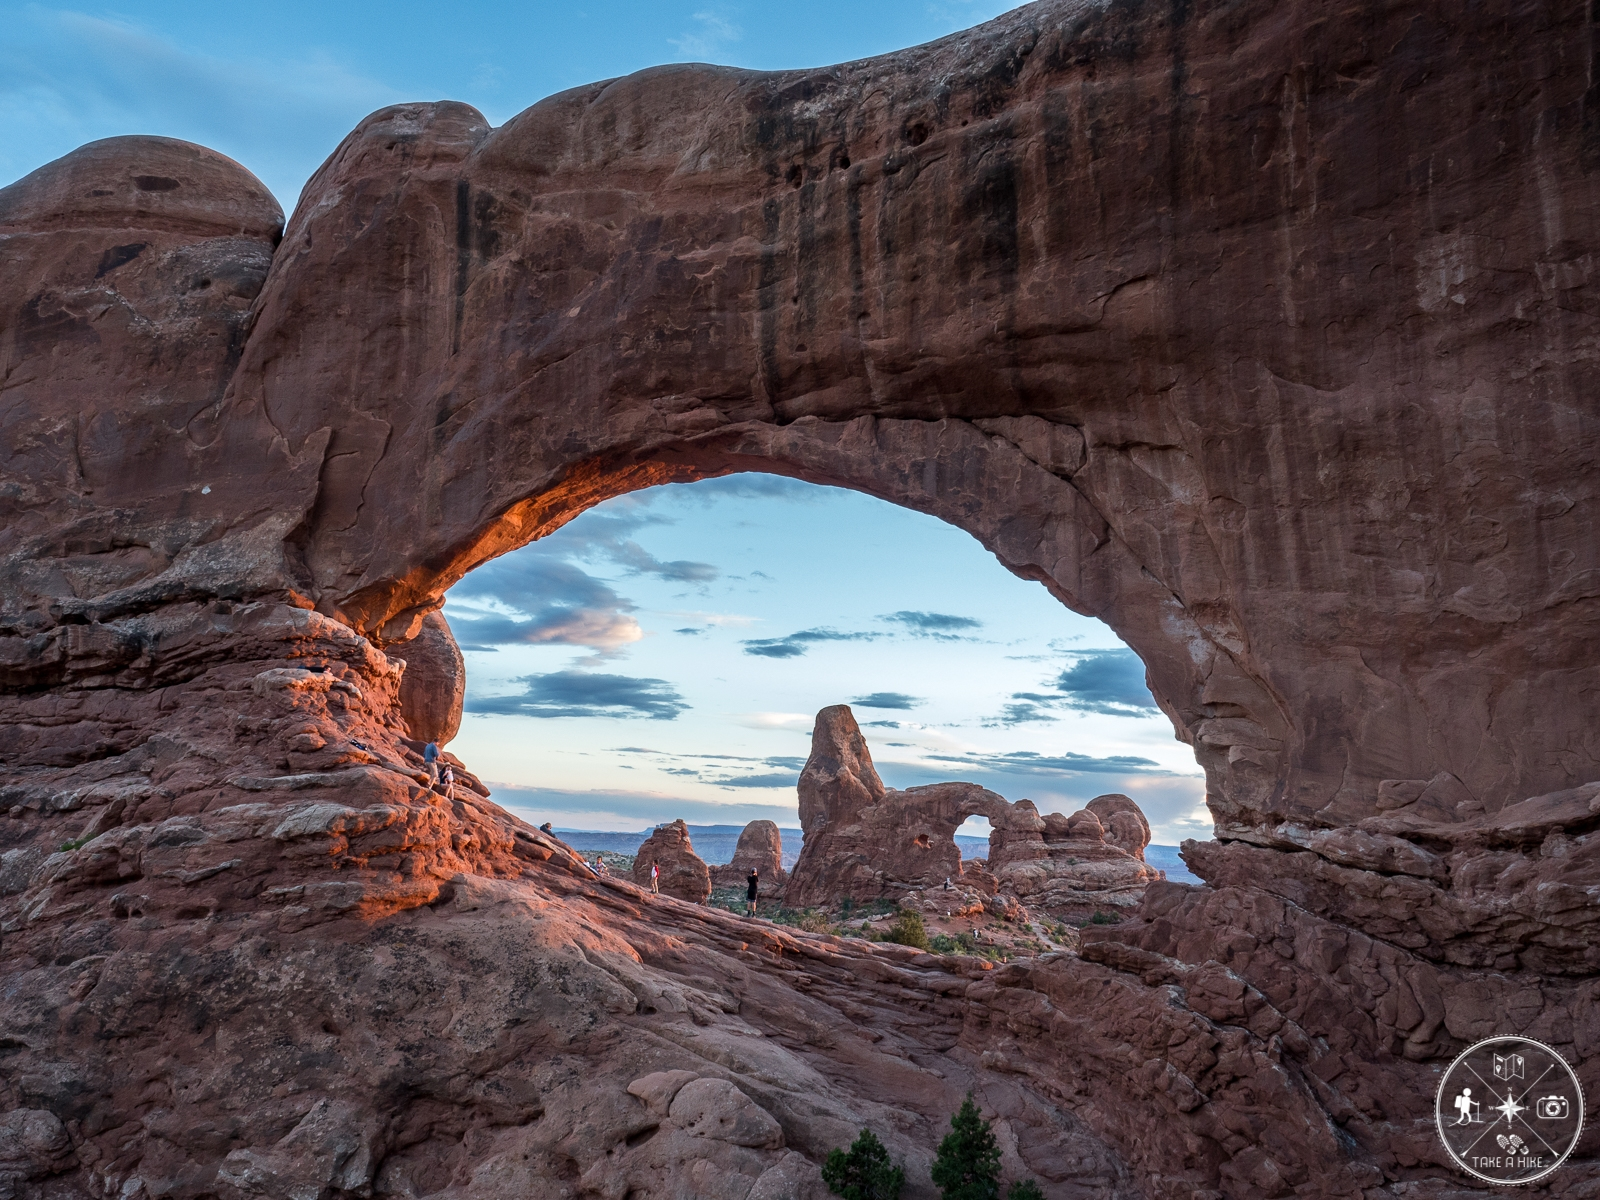 North Window mit Turret Arch zum Sonnenuntergang